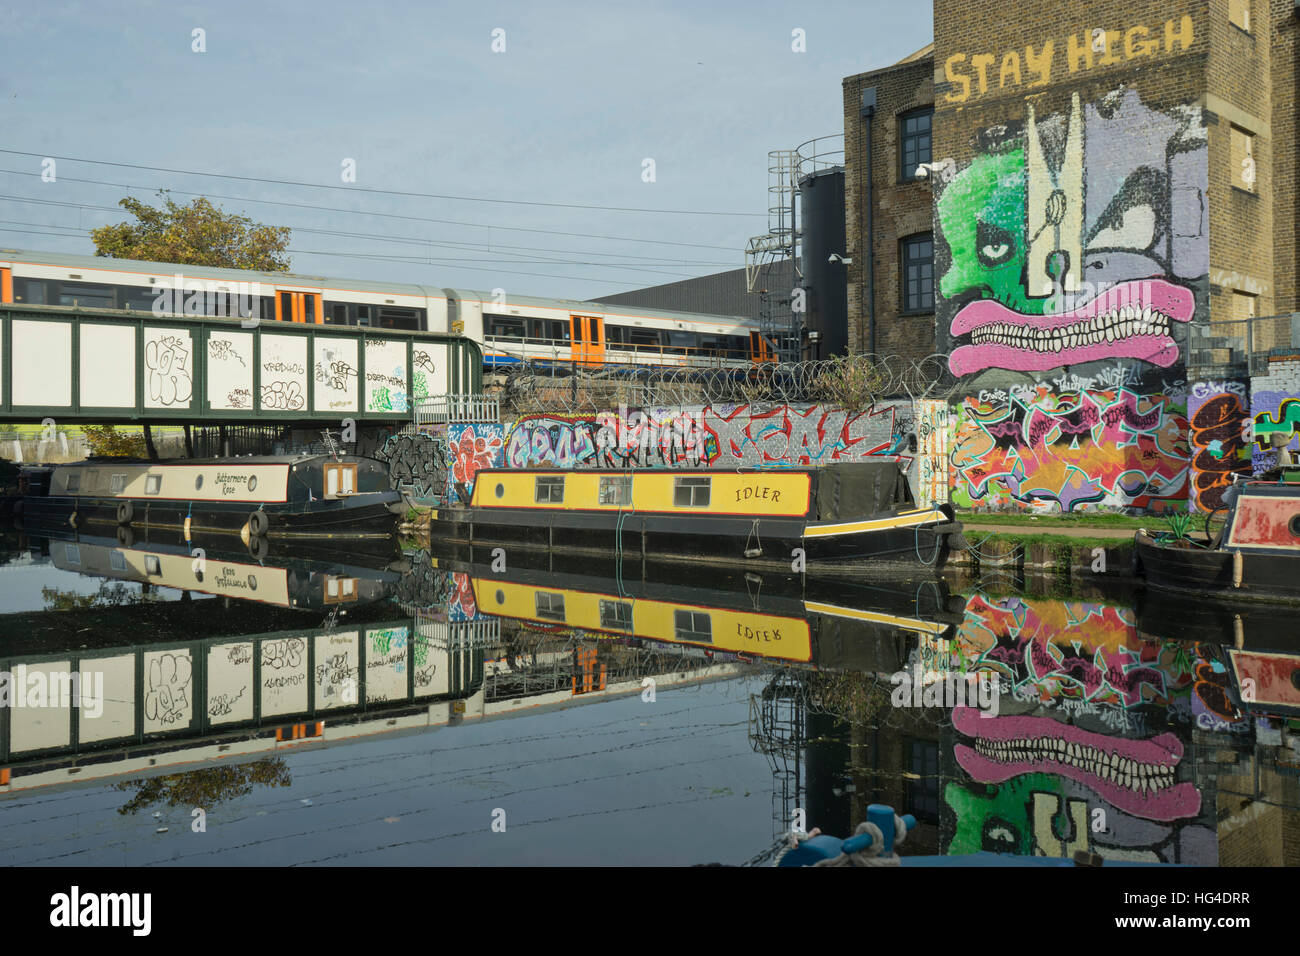 Overground train drives past canal by artists studios and warehouses in Hackney Wick, London, England, United Kingdom - Stock Image